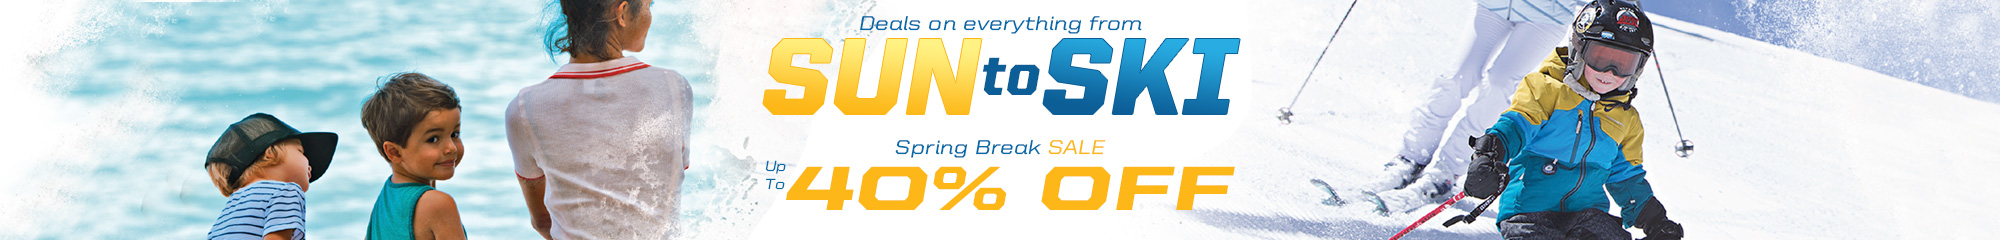 Deals on everything from Sun to Ski. Spring break sale up to 40% off.